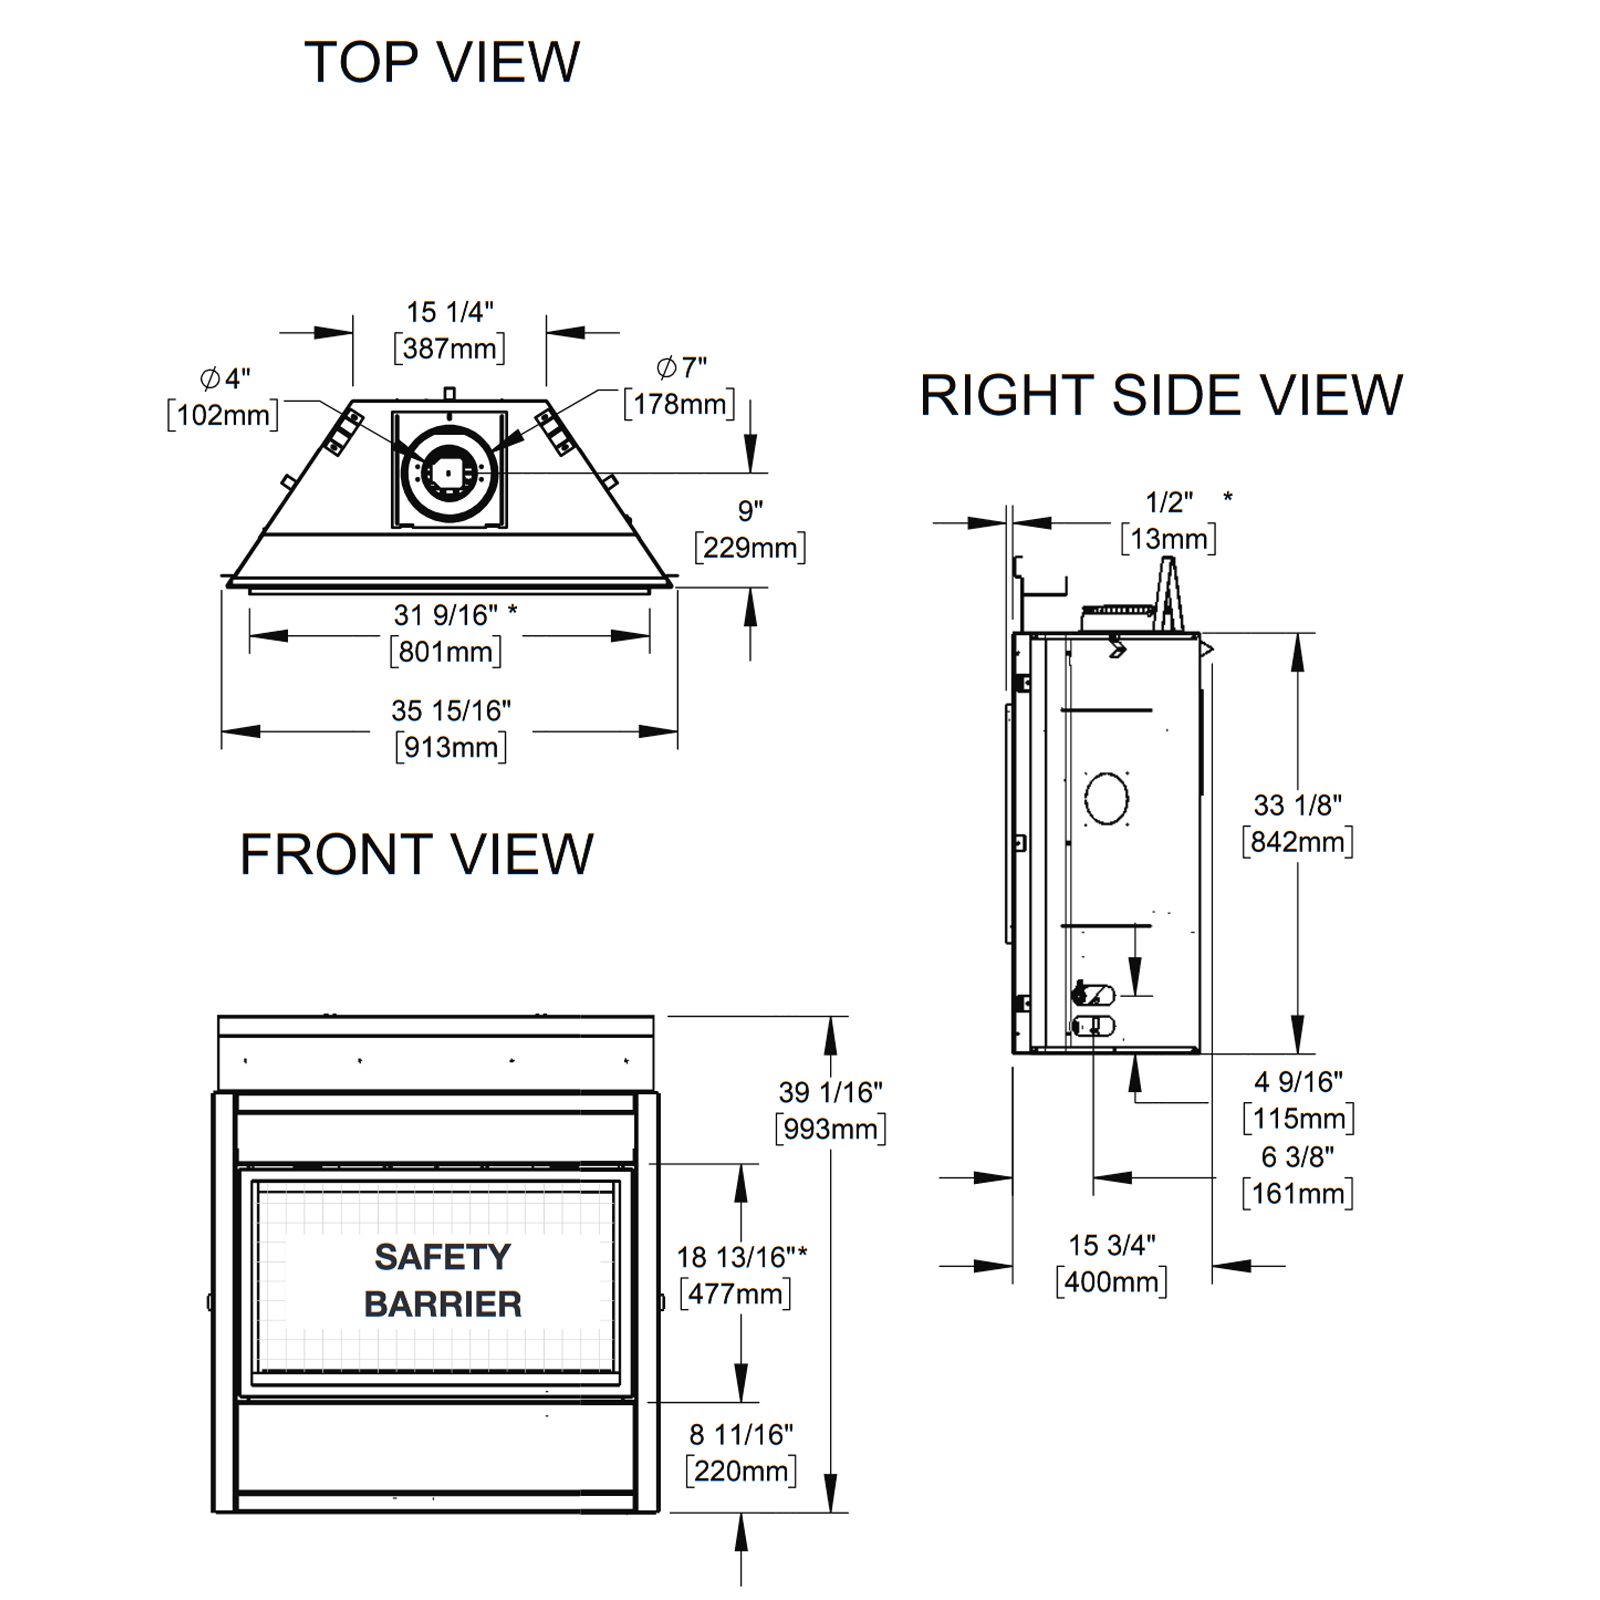 BL36 Technical Drawing 1